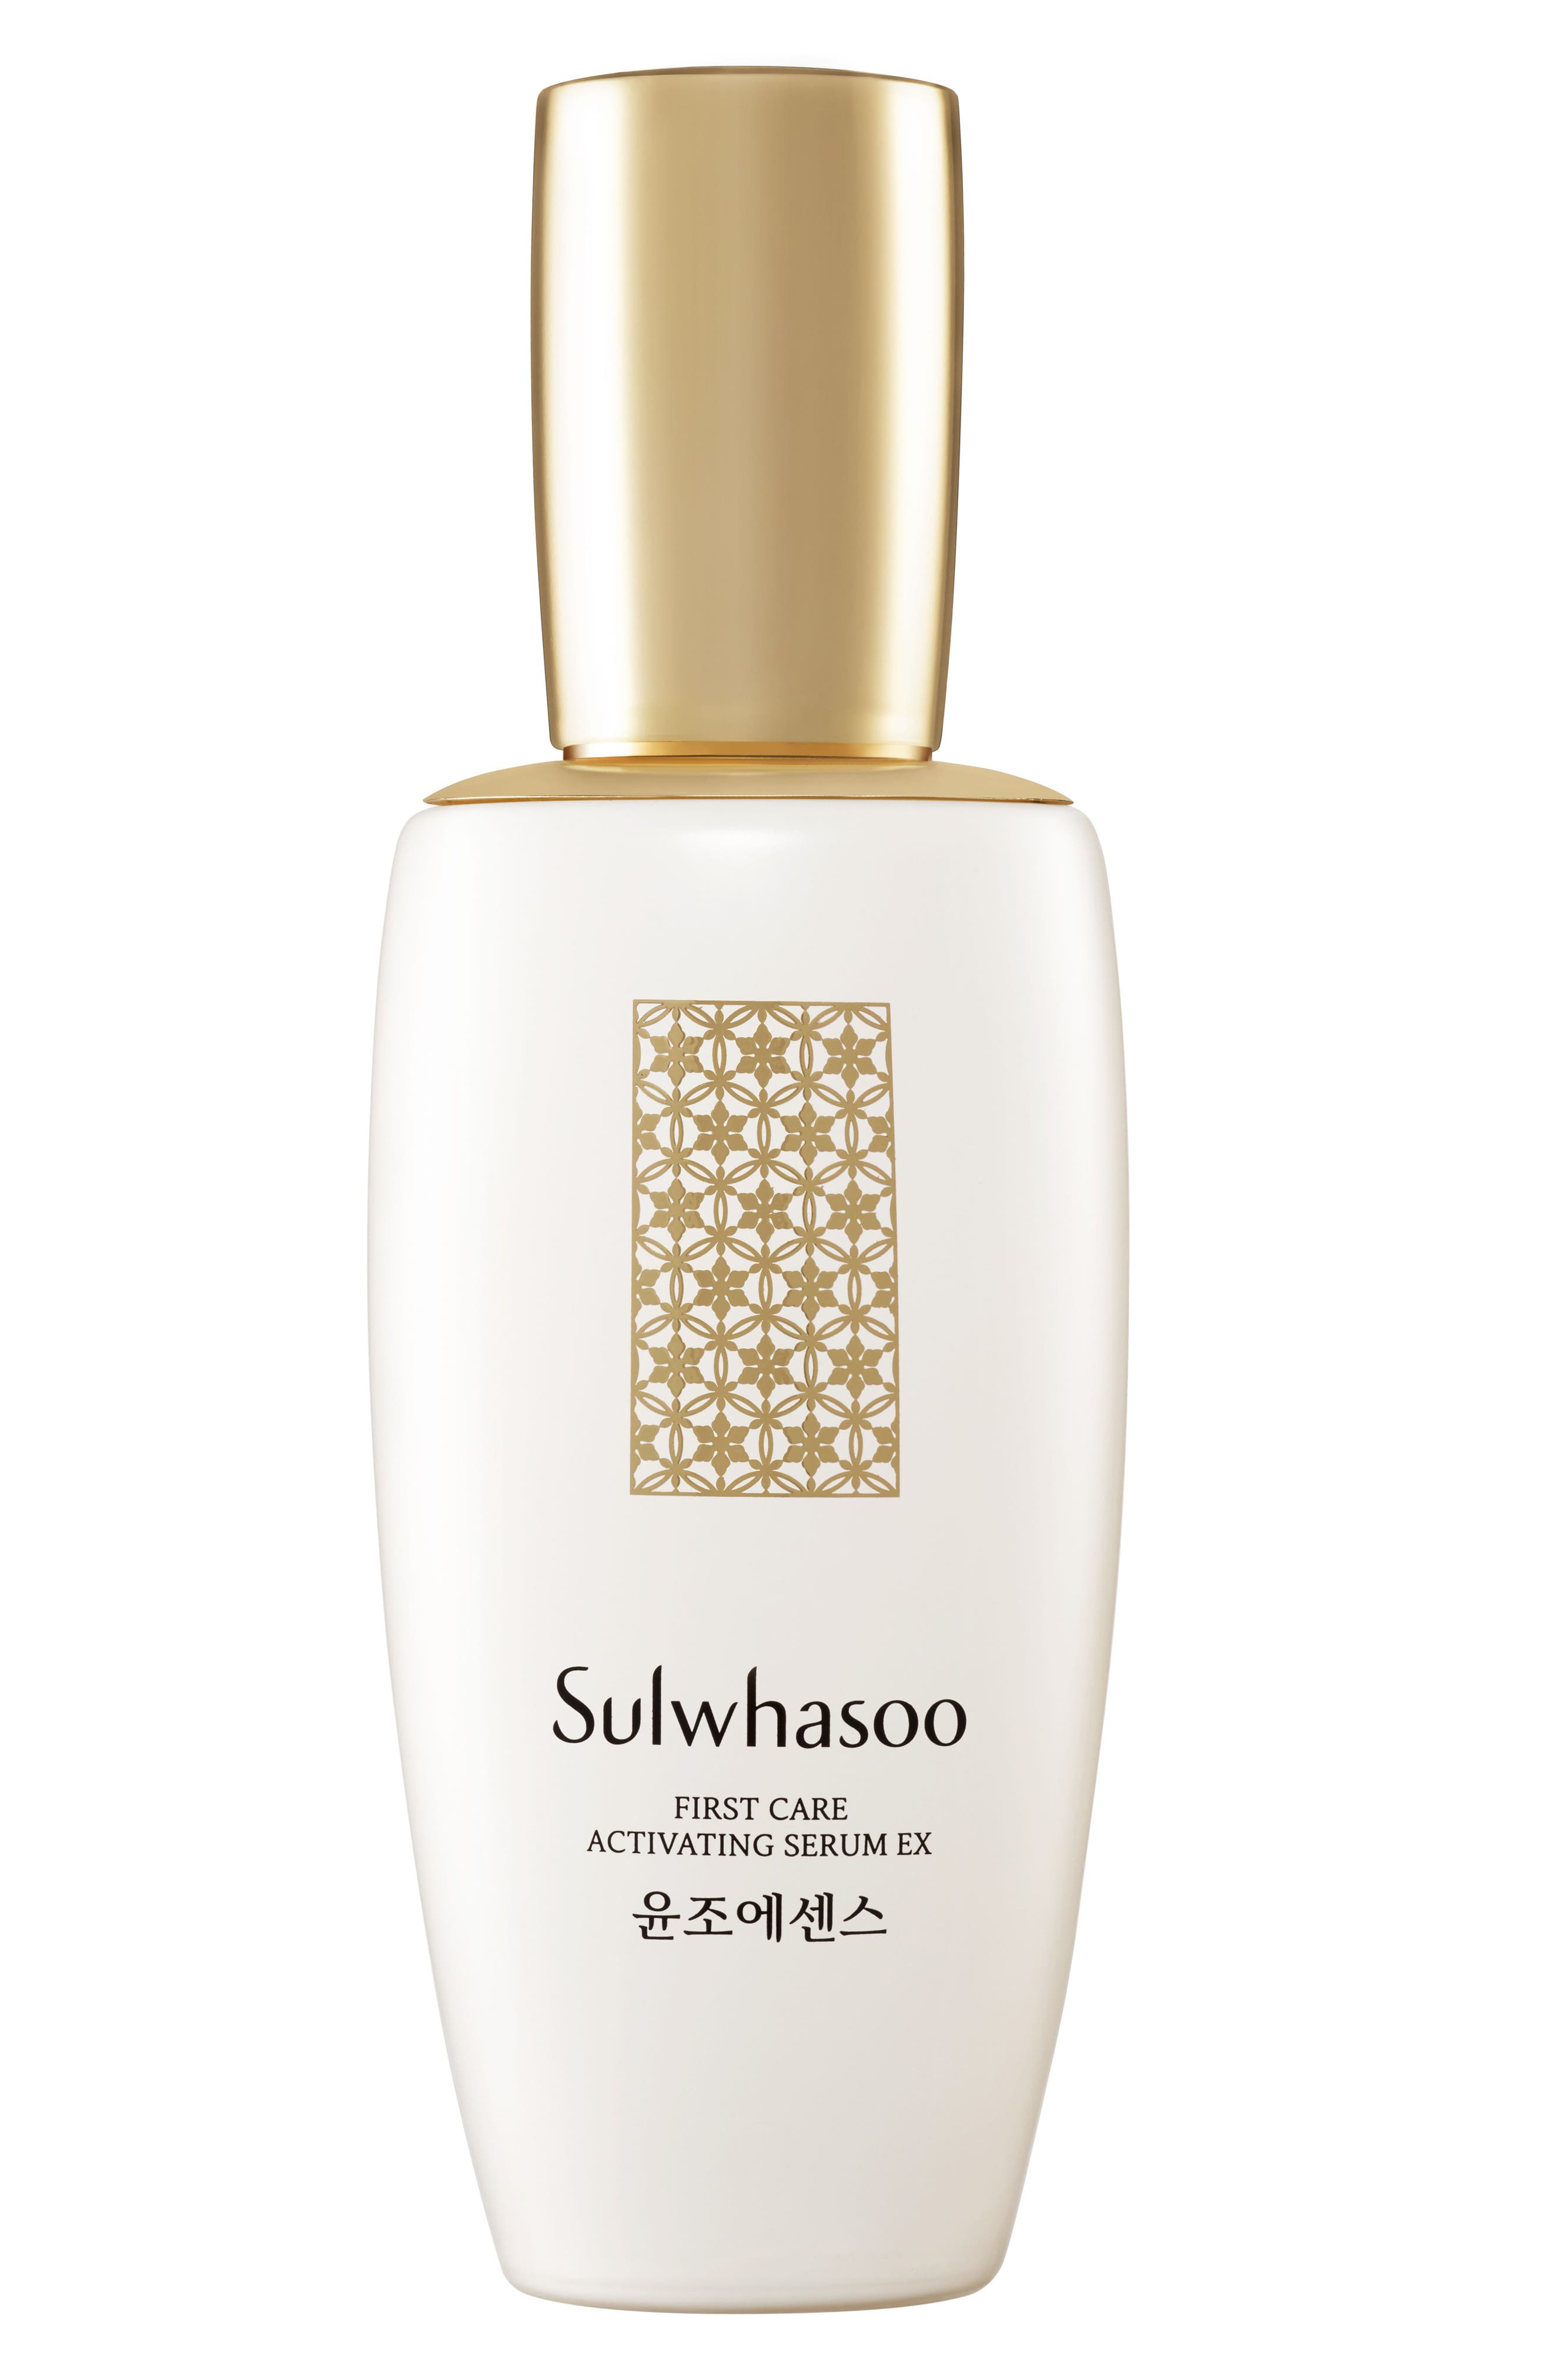 Sulwhasoo First Care Activating Serum EX (Limited Edition)